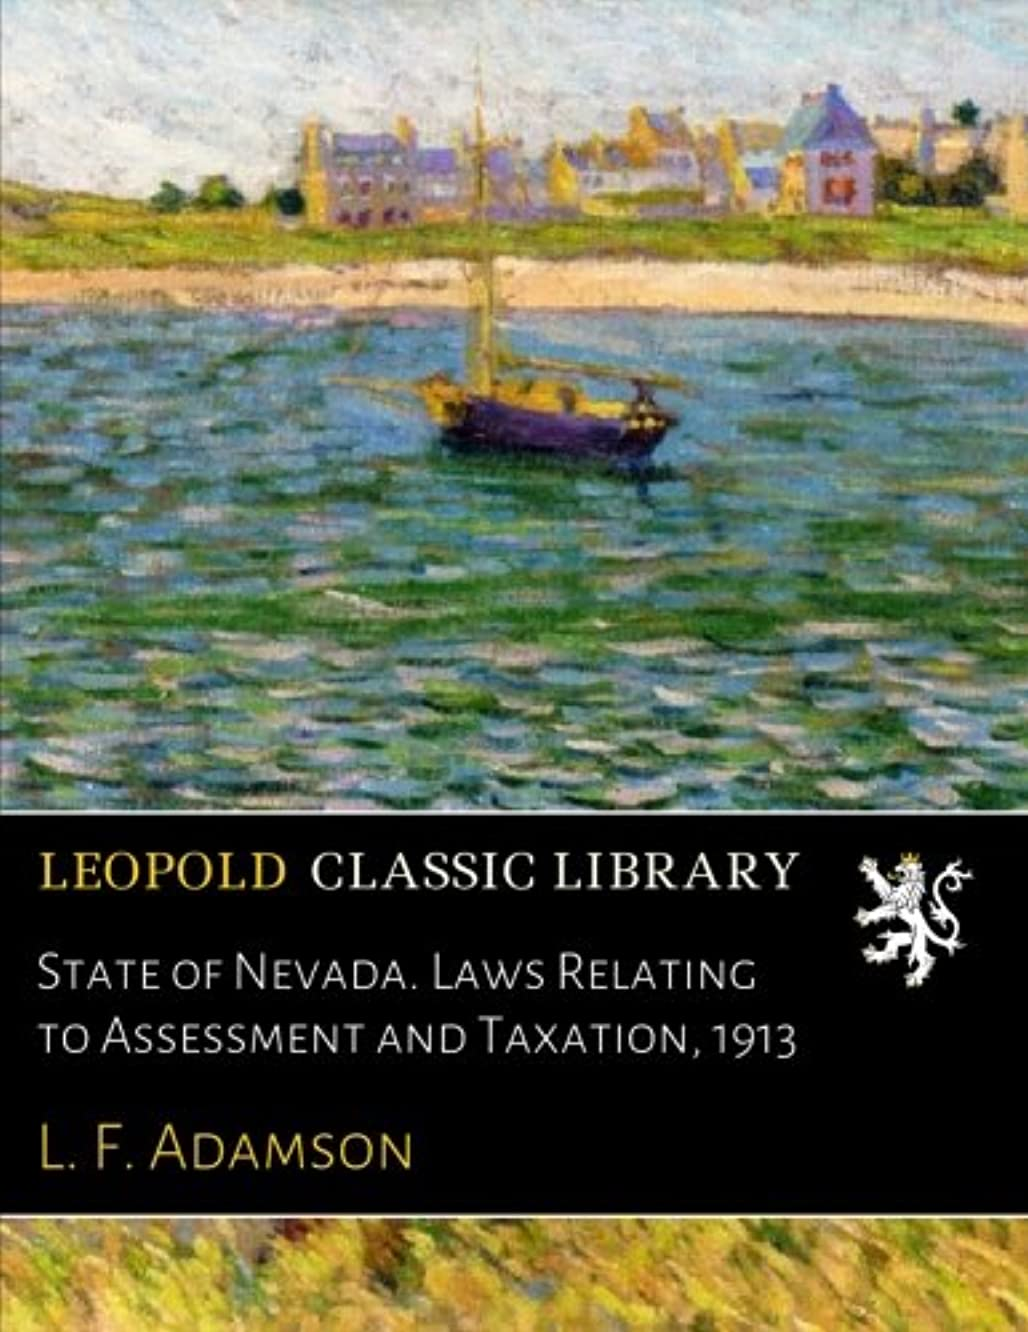 State of Nevada. Laws Relating to Assessment and Taxation, 1913